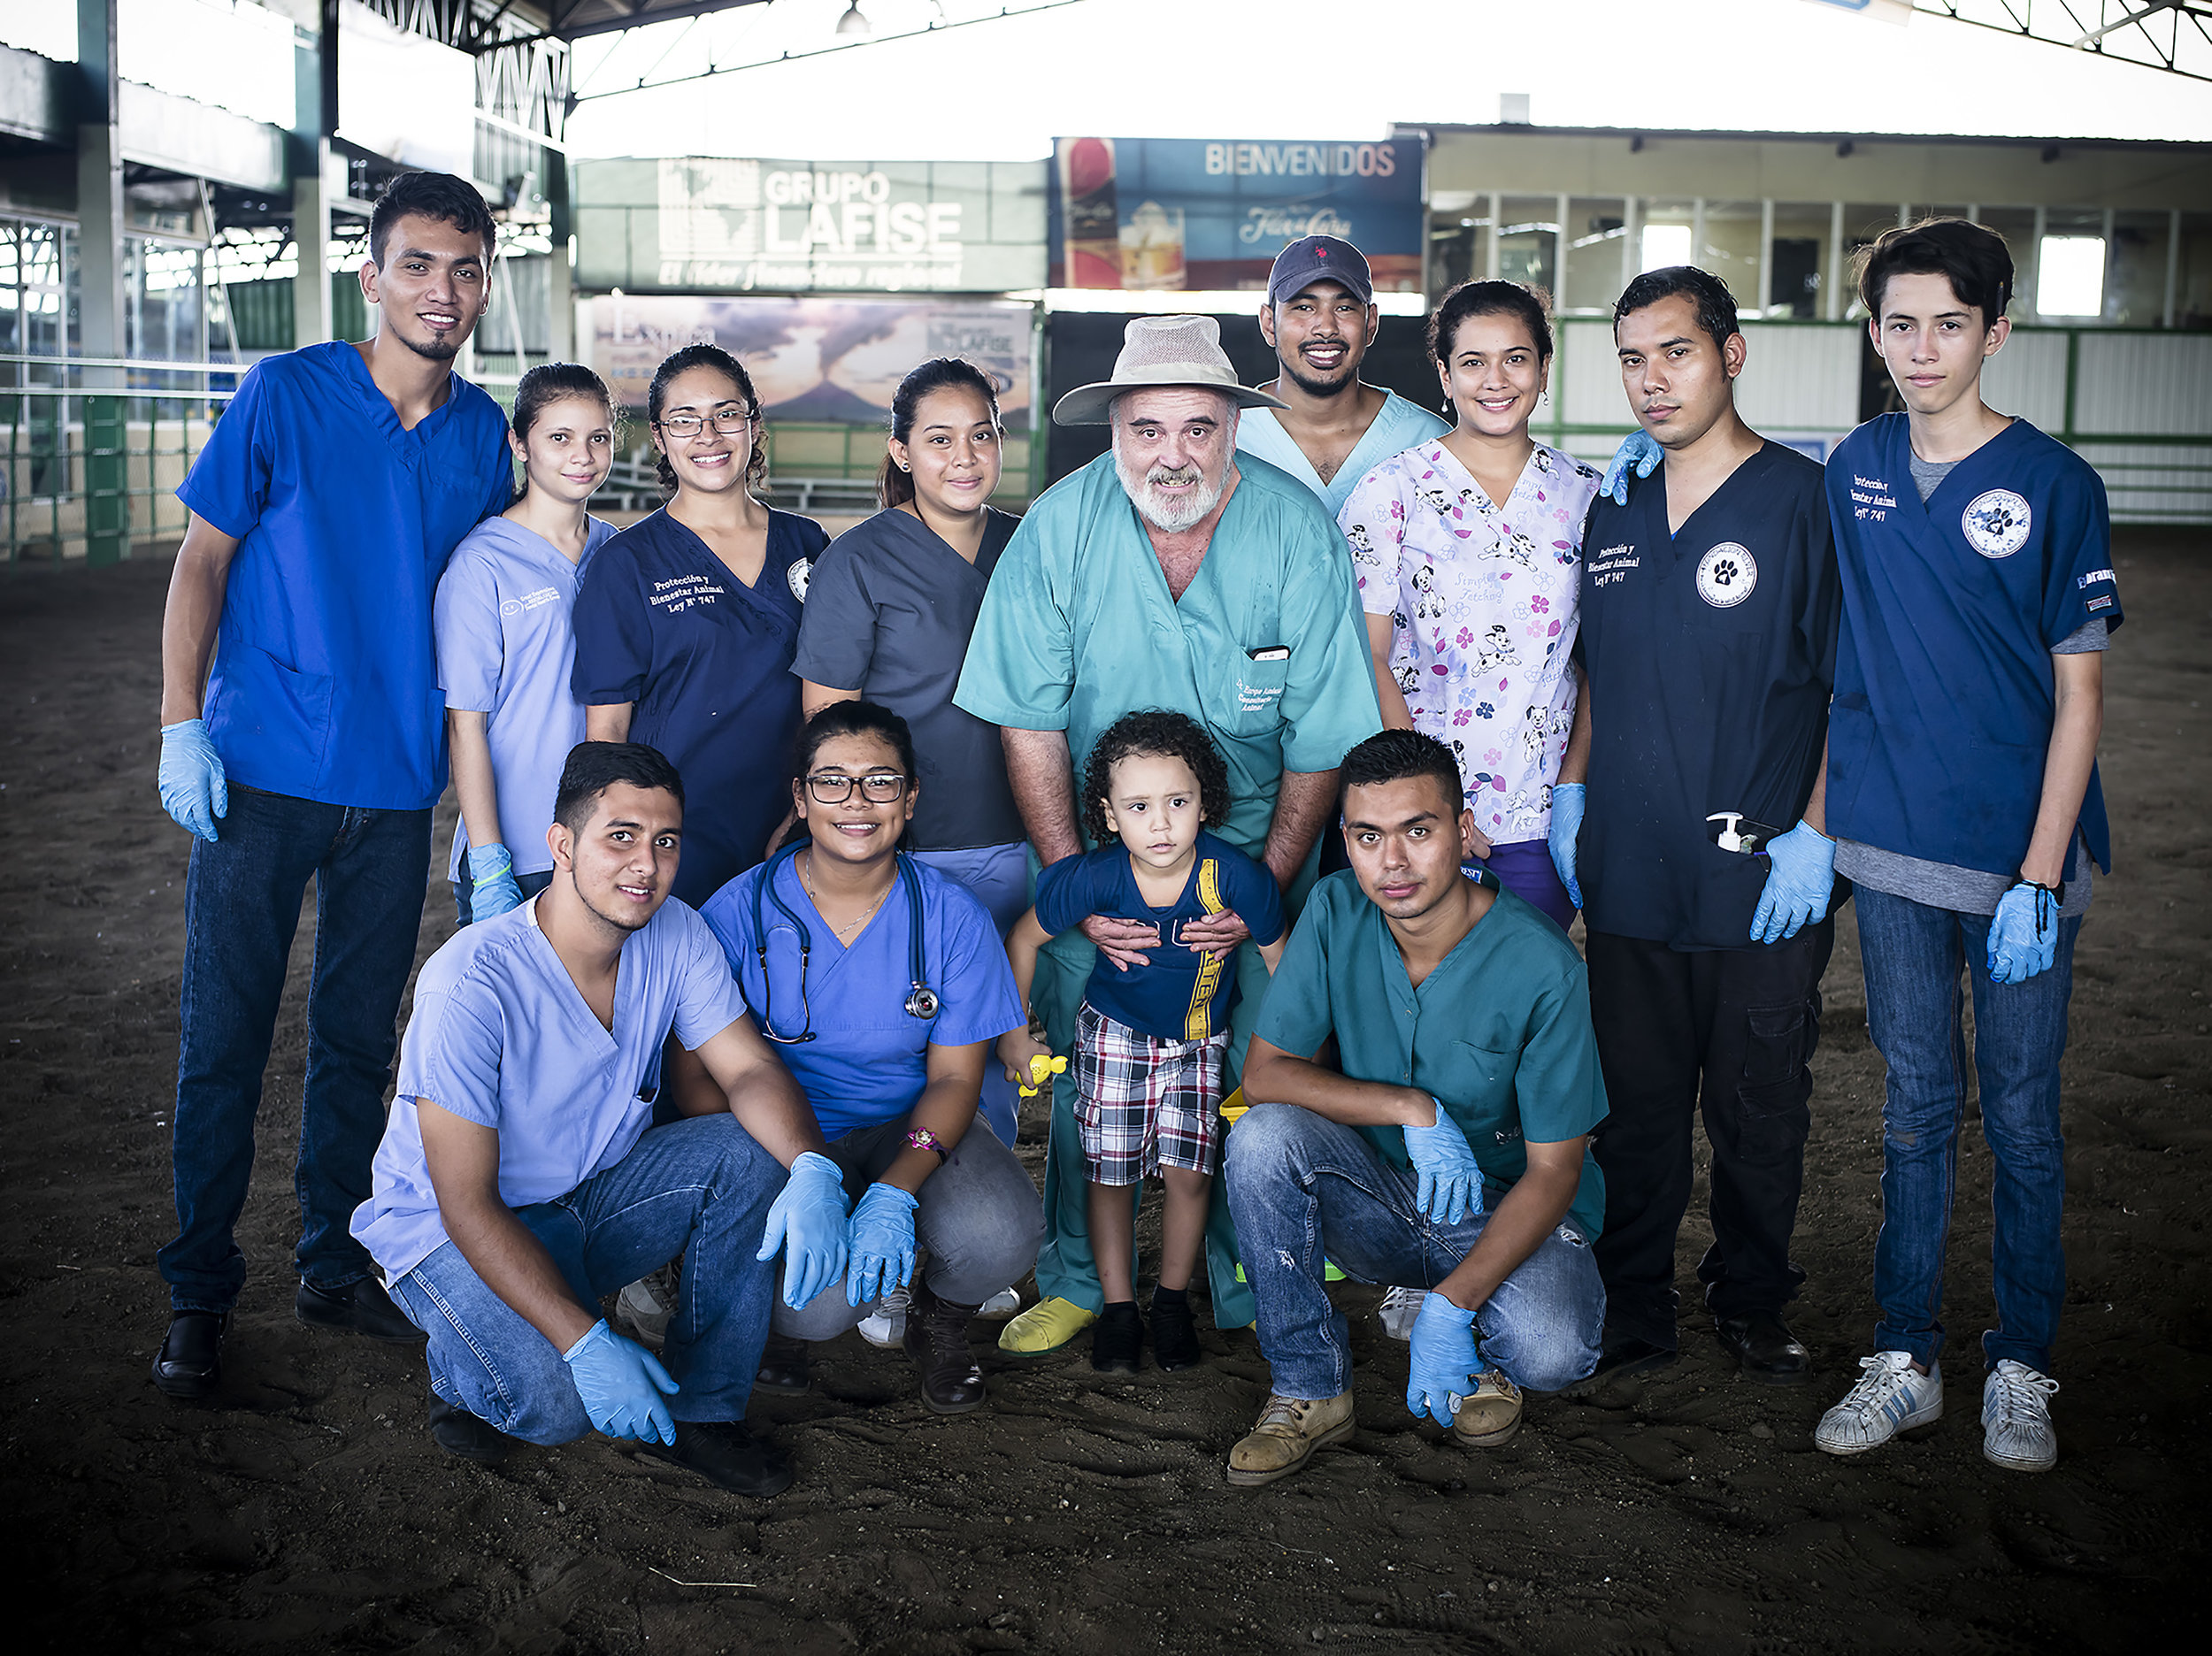 Dr. Enrique Rimbaud and his team of professions all volunteer their weekend to help many horses from La Chureca.